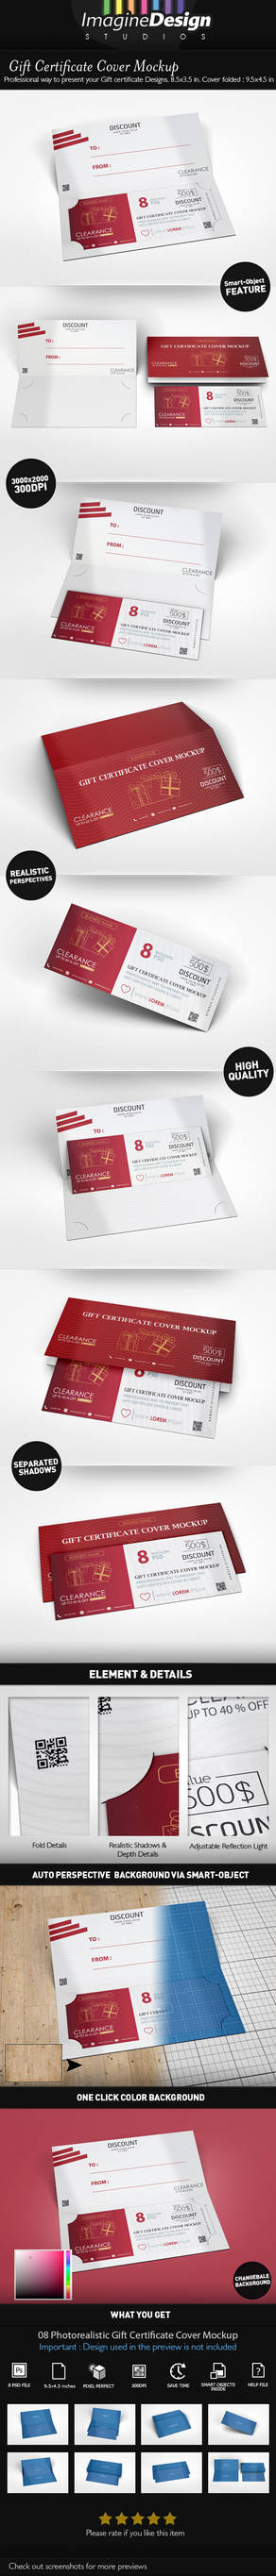 Gift Certificate Cover Mock-up